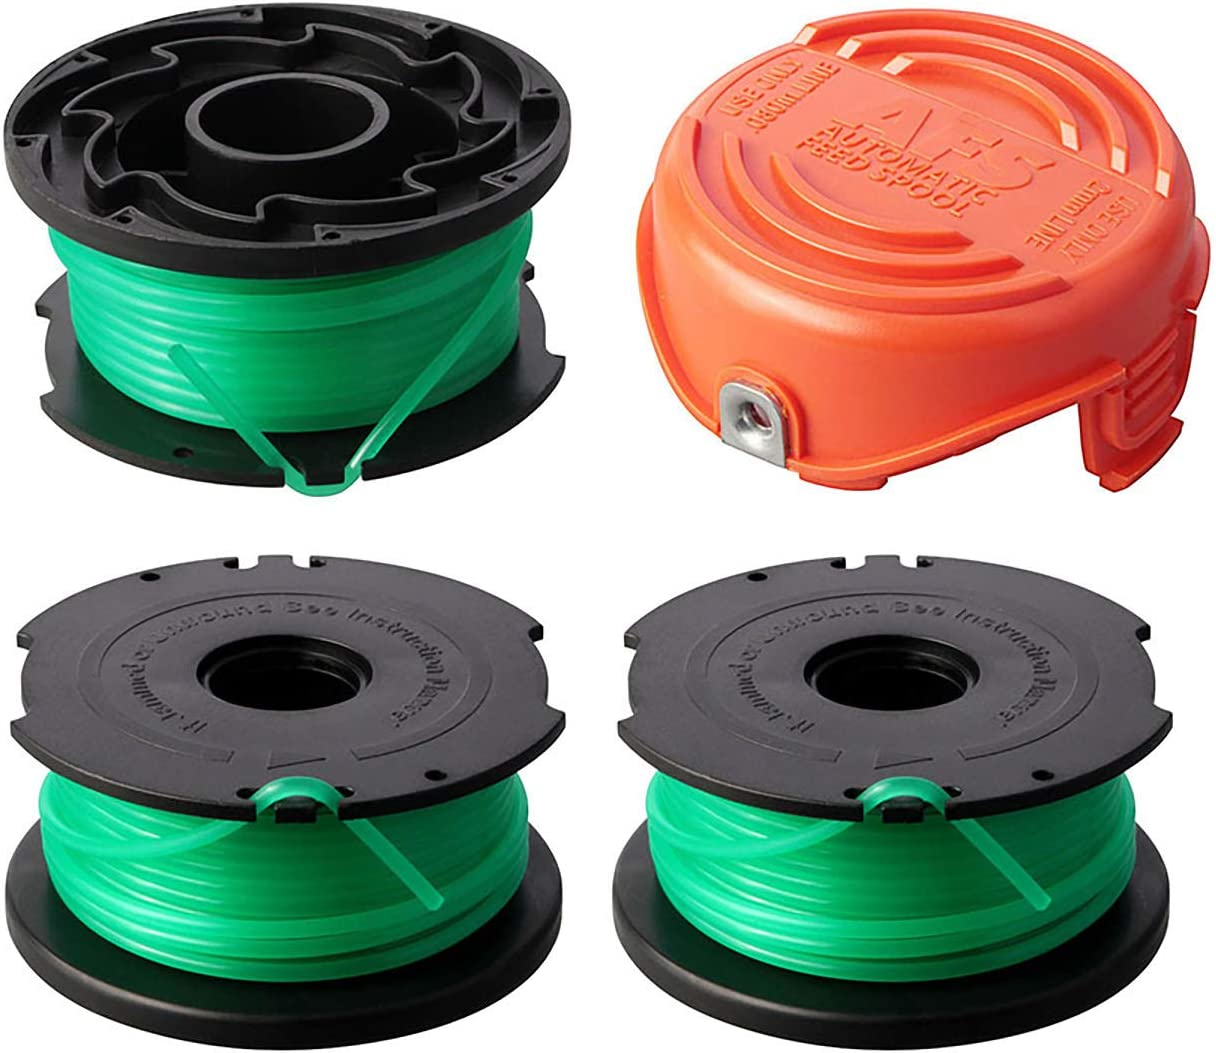 """THTEN String Trimmer Spool Replacement for Black and Decker SF-080 GH3000 LST540 Weed Eater 20ft 0.080"""" GH3000R LST540B Auto Feed Single Line with 90583594Cap Covers Parts"""